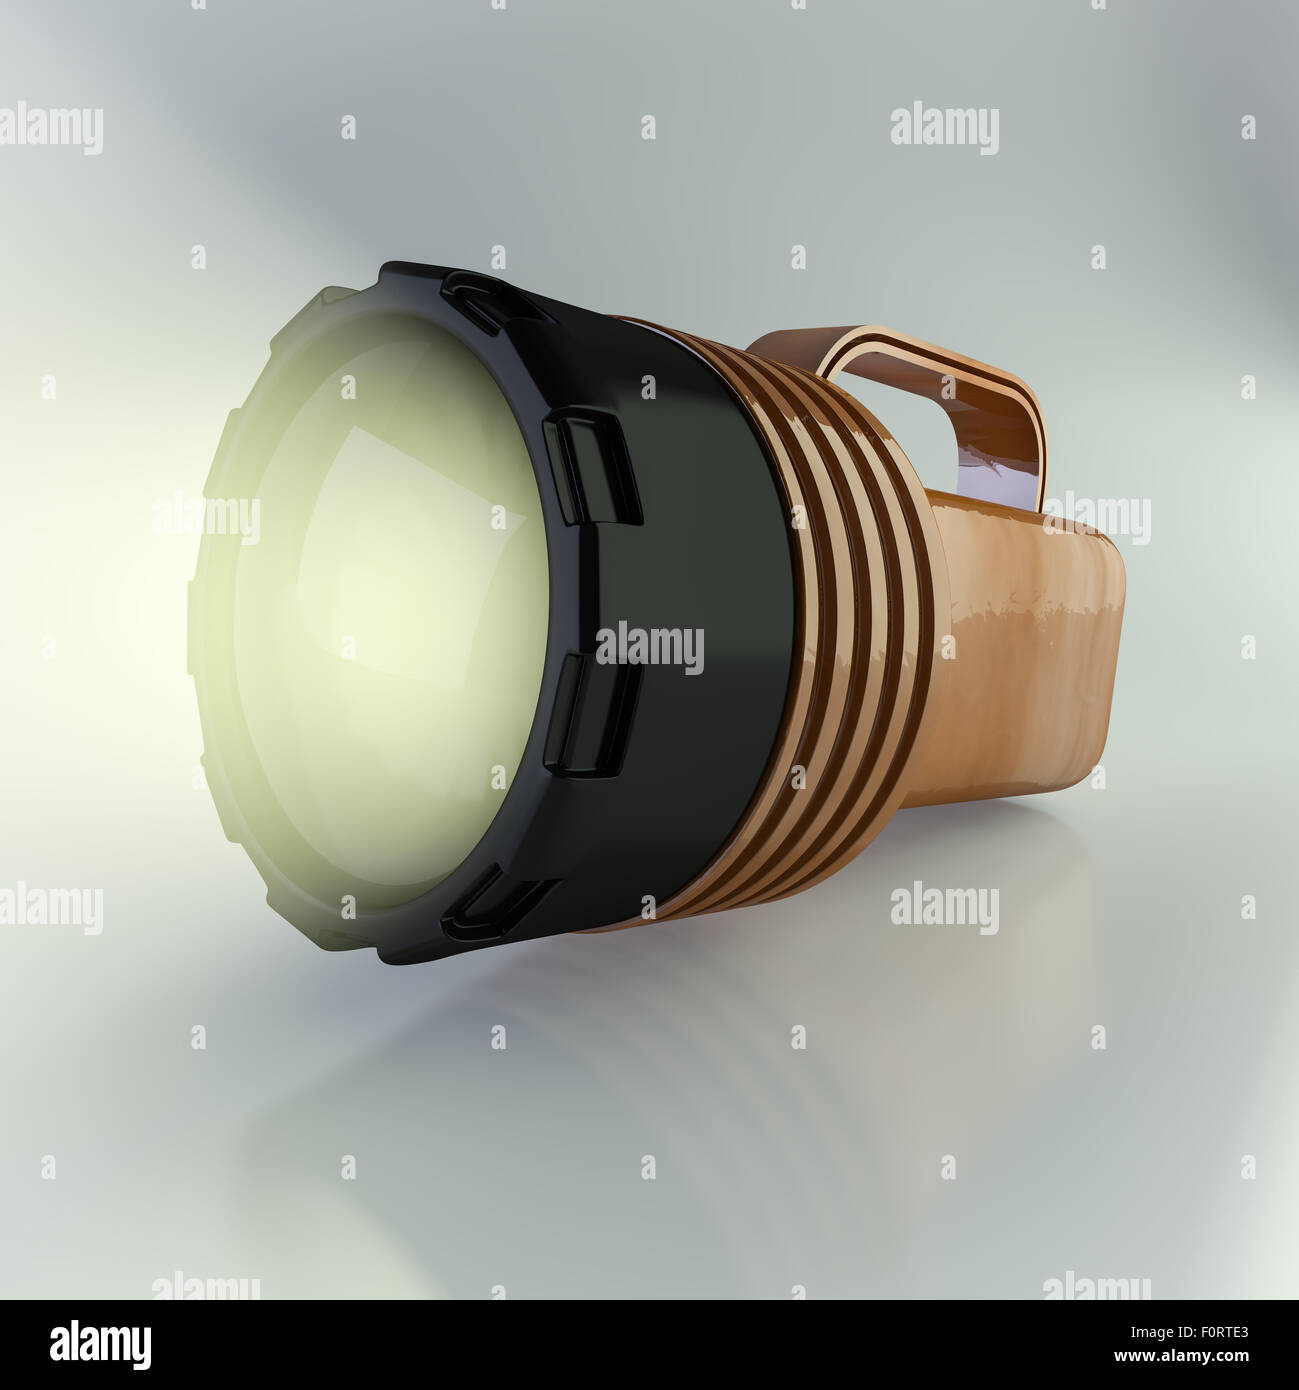 realistic 3d render of flashlight - Stock Image